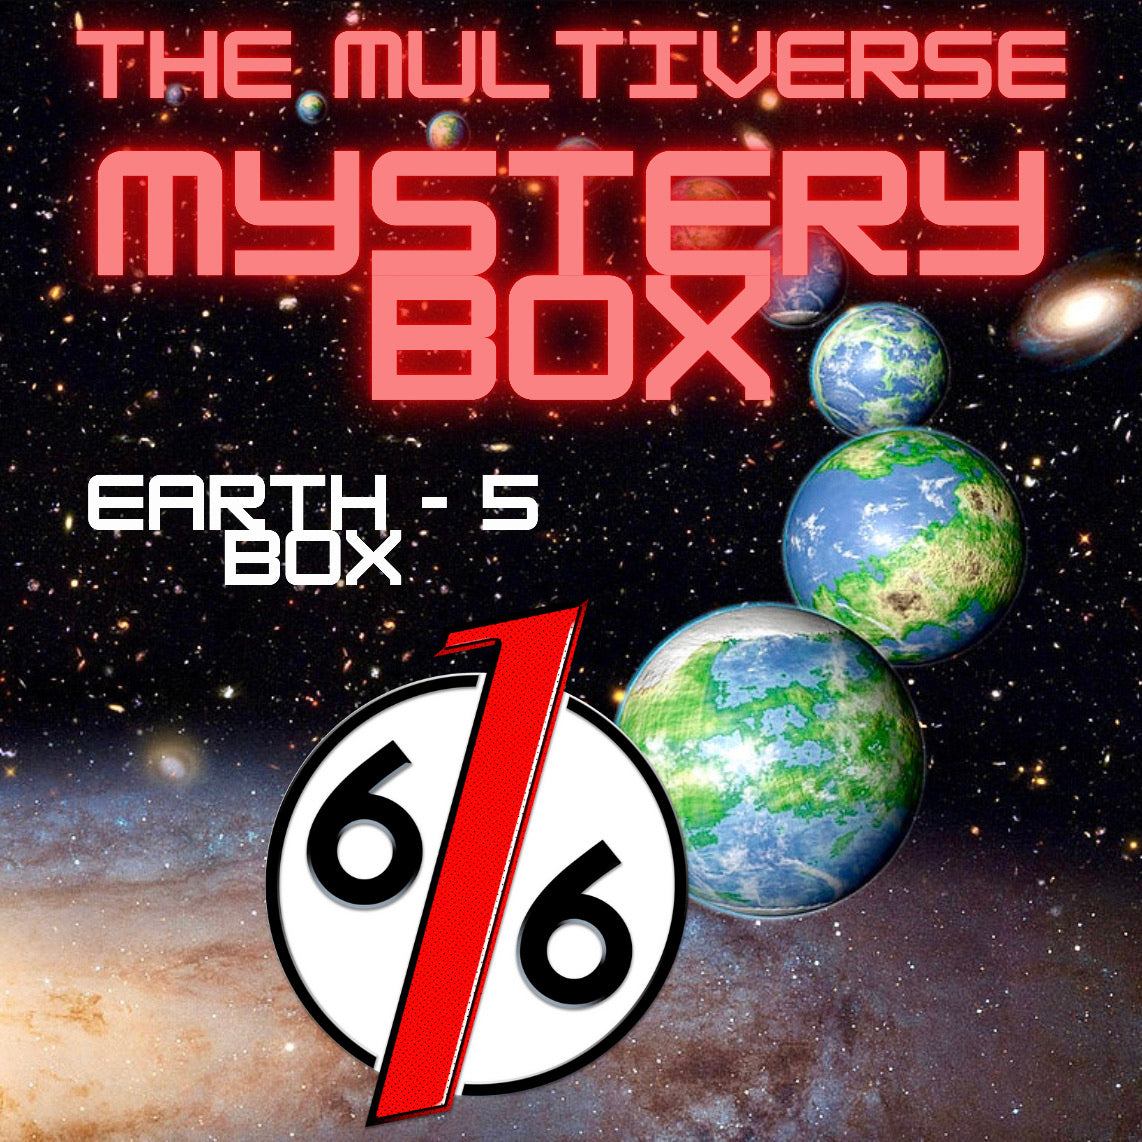 MULTIVERSE MYSTERY BOX - EARTH 5 BOX - 2 Exclusive Variants / 5 Comics Total!